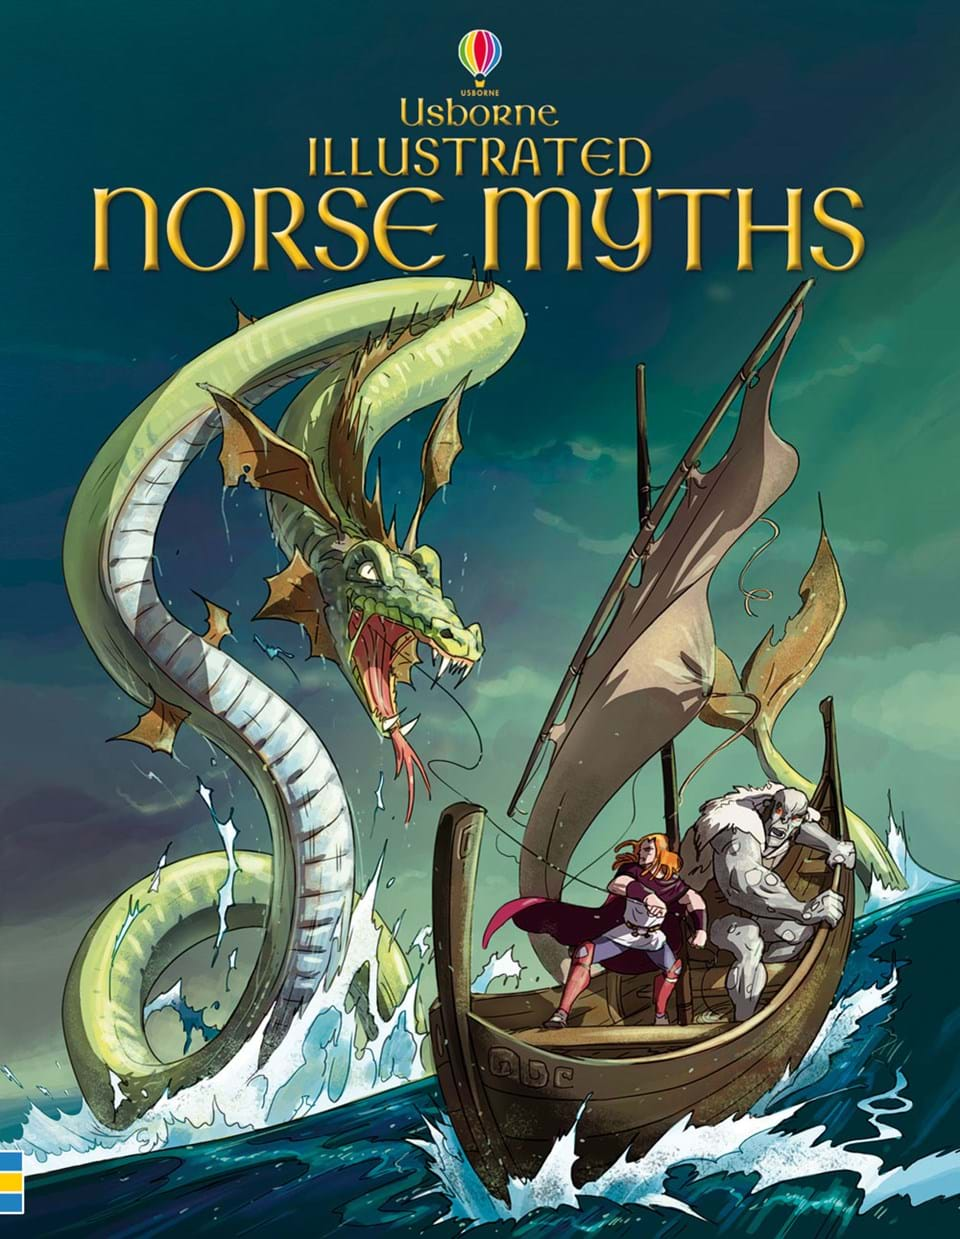 greek and norse myths An introduction the greek gods and heroes of greek mythology according to edith hamilton learn with flashcards, games, and more — for free.